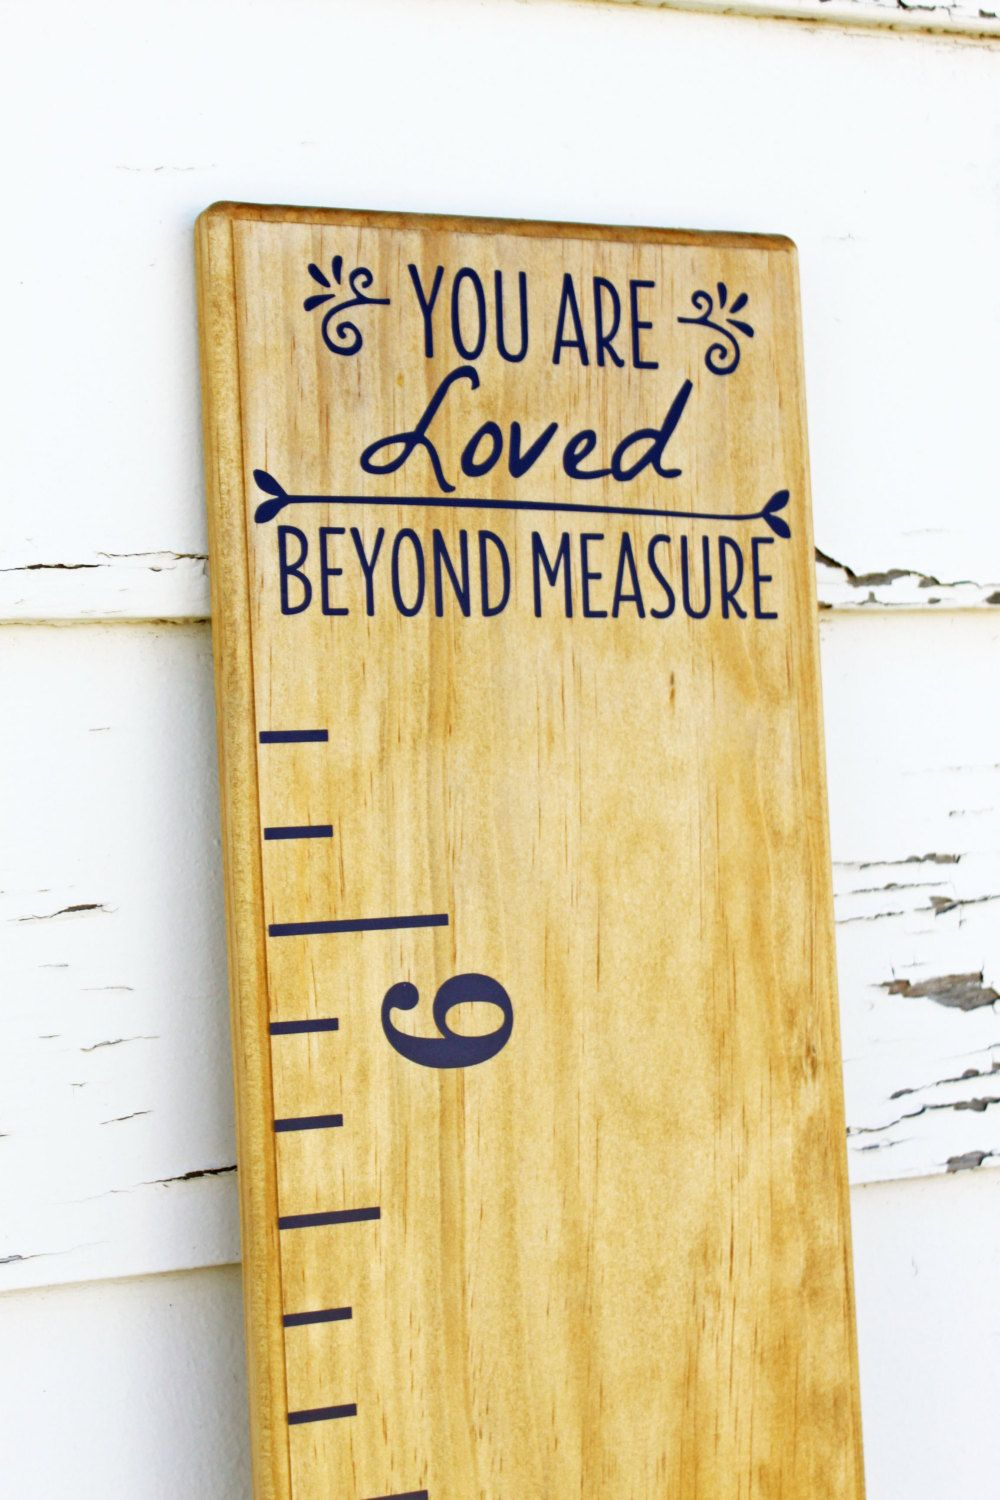 Growth chart ruler add on loved beyond measure vinyl decal top id love this in my room growth chart ruler add on you are loved beyond measure vinyl decal with heart top header by littleacornsbyro on etsy nvjuhfo Gallery